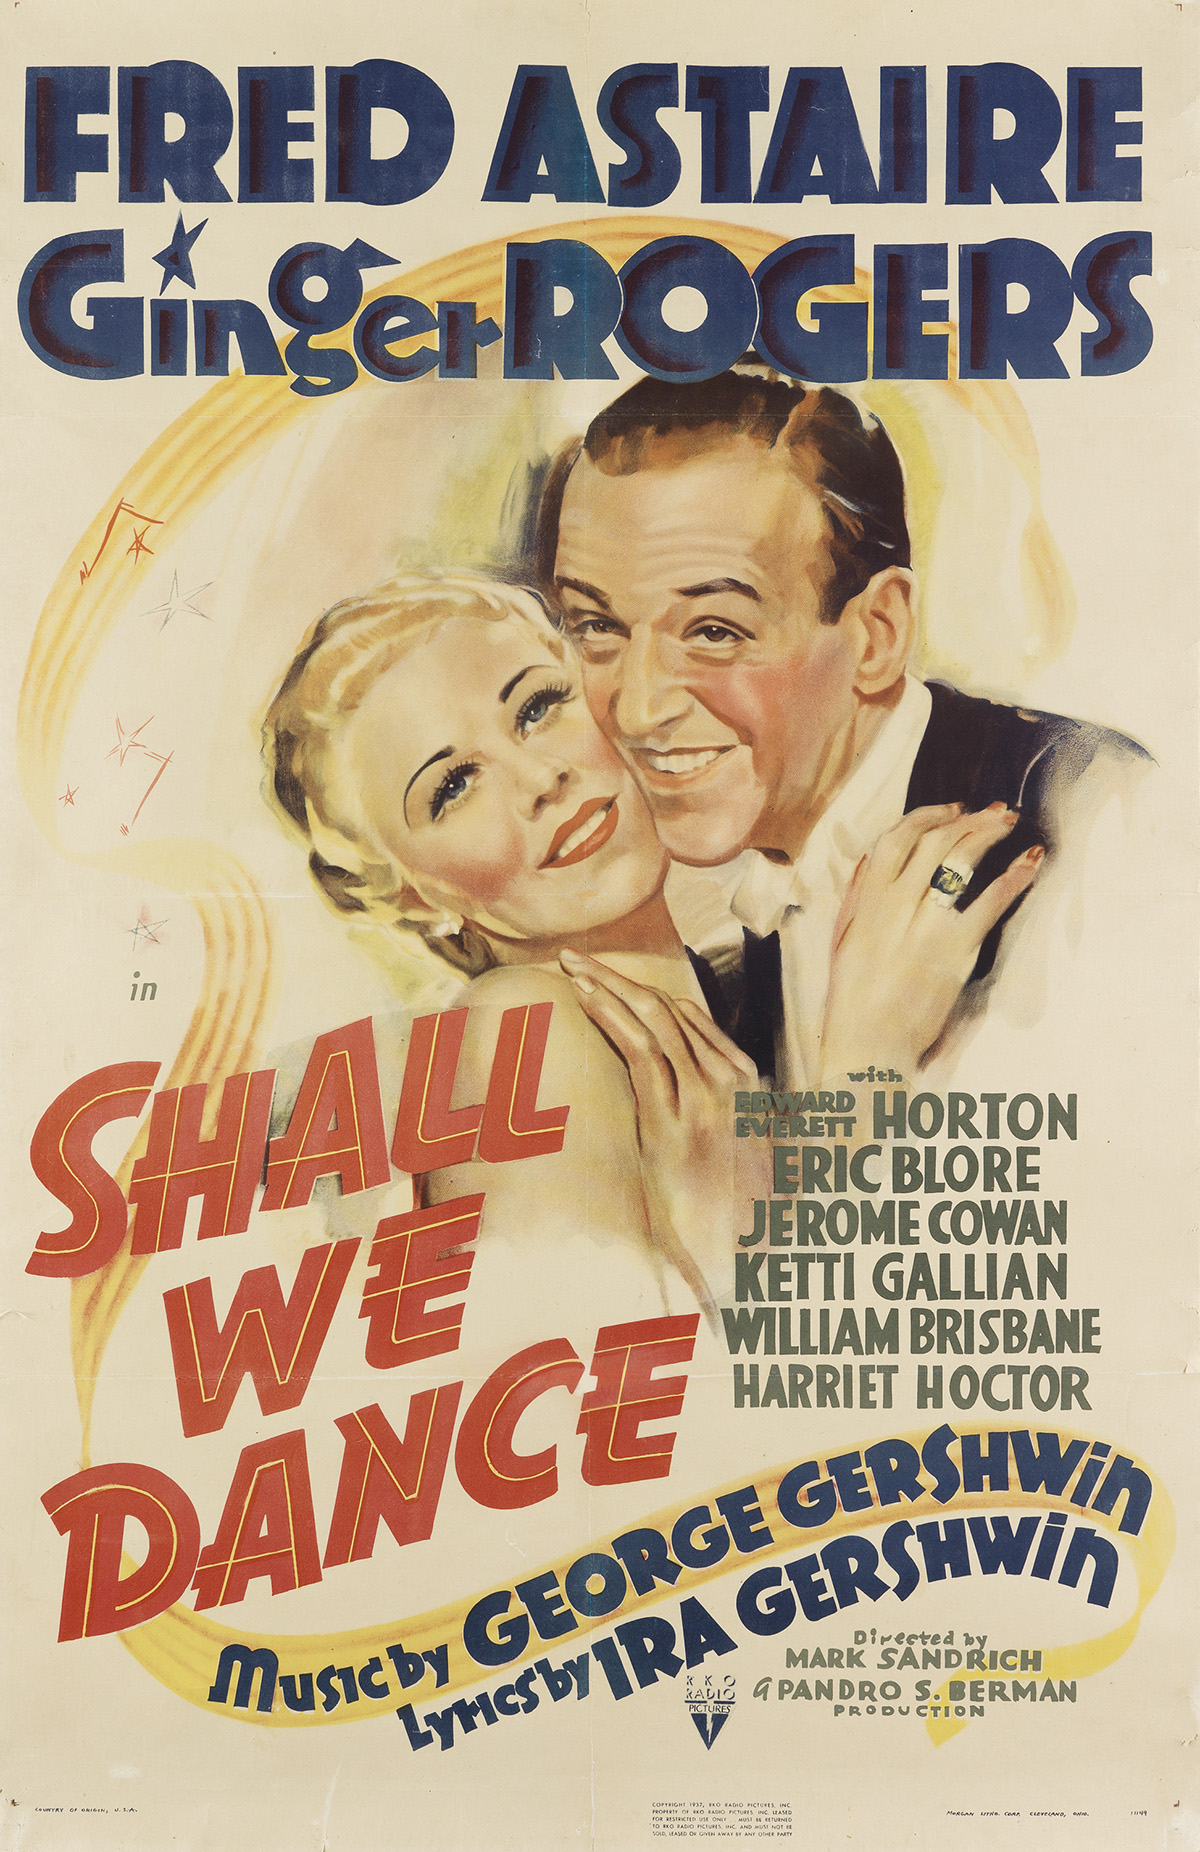 DESIGNER UNKNOWN. SHALL WE DANCE / FRED ASTAIRE / GINGER ROGERS. 1937. 39x25 inches, 101x65 cm. Morgan Lith. Corp., Cleveland.